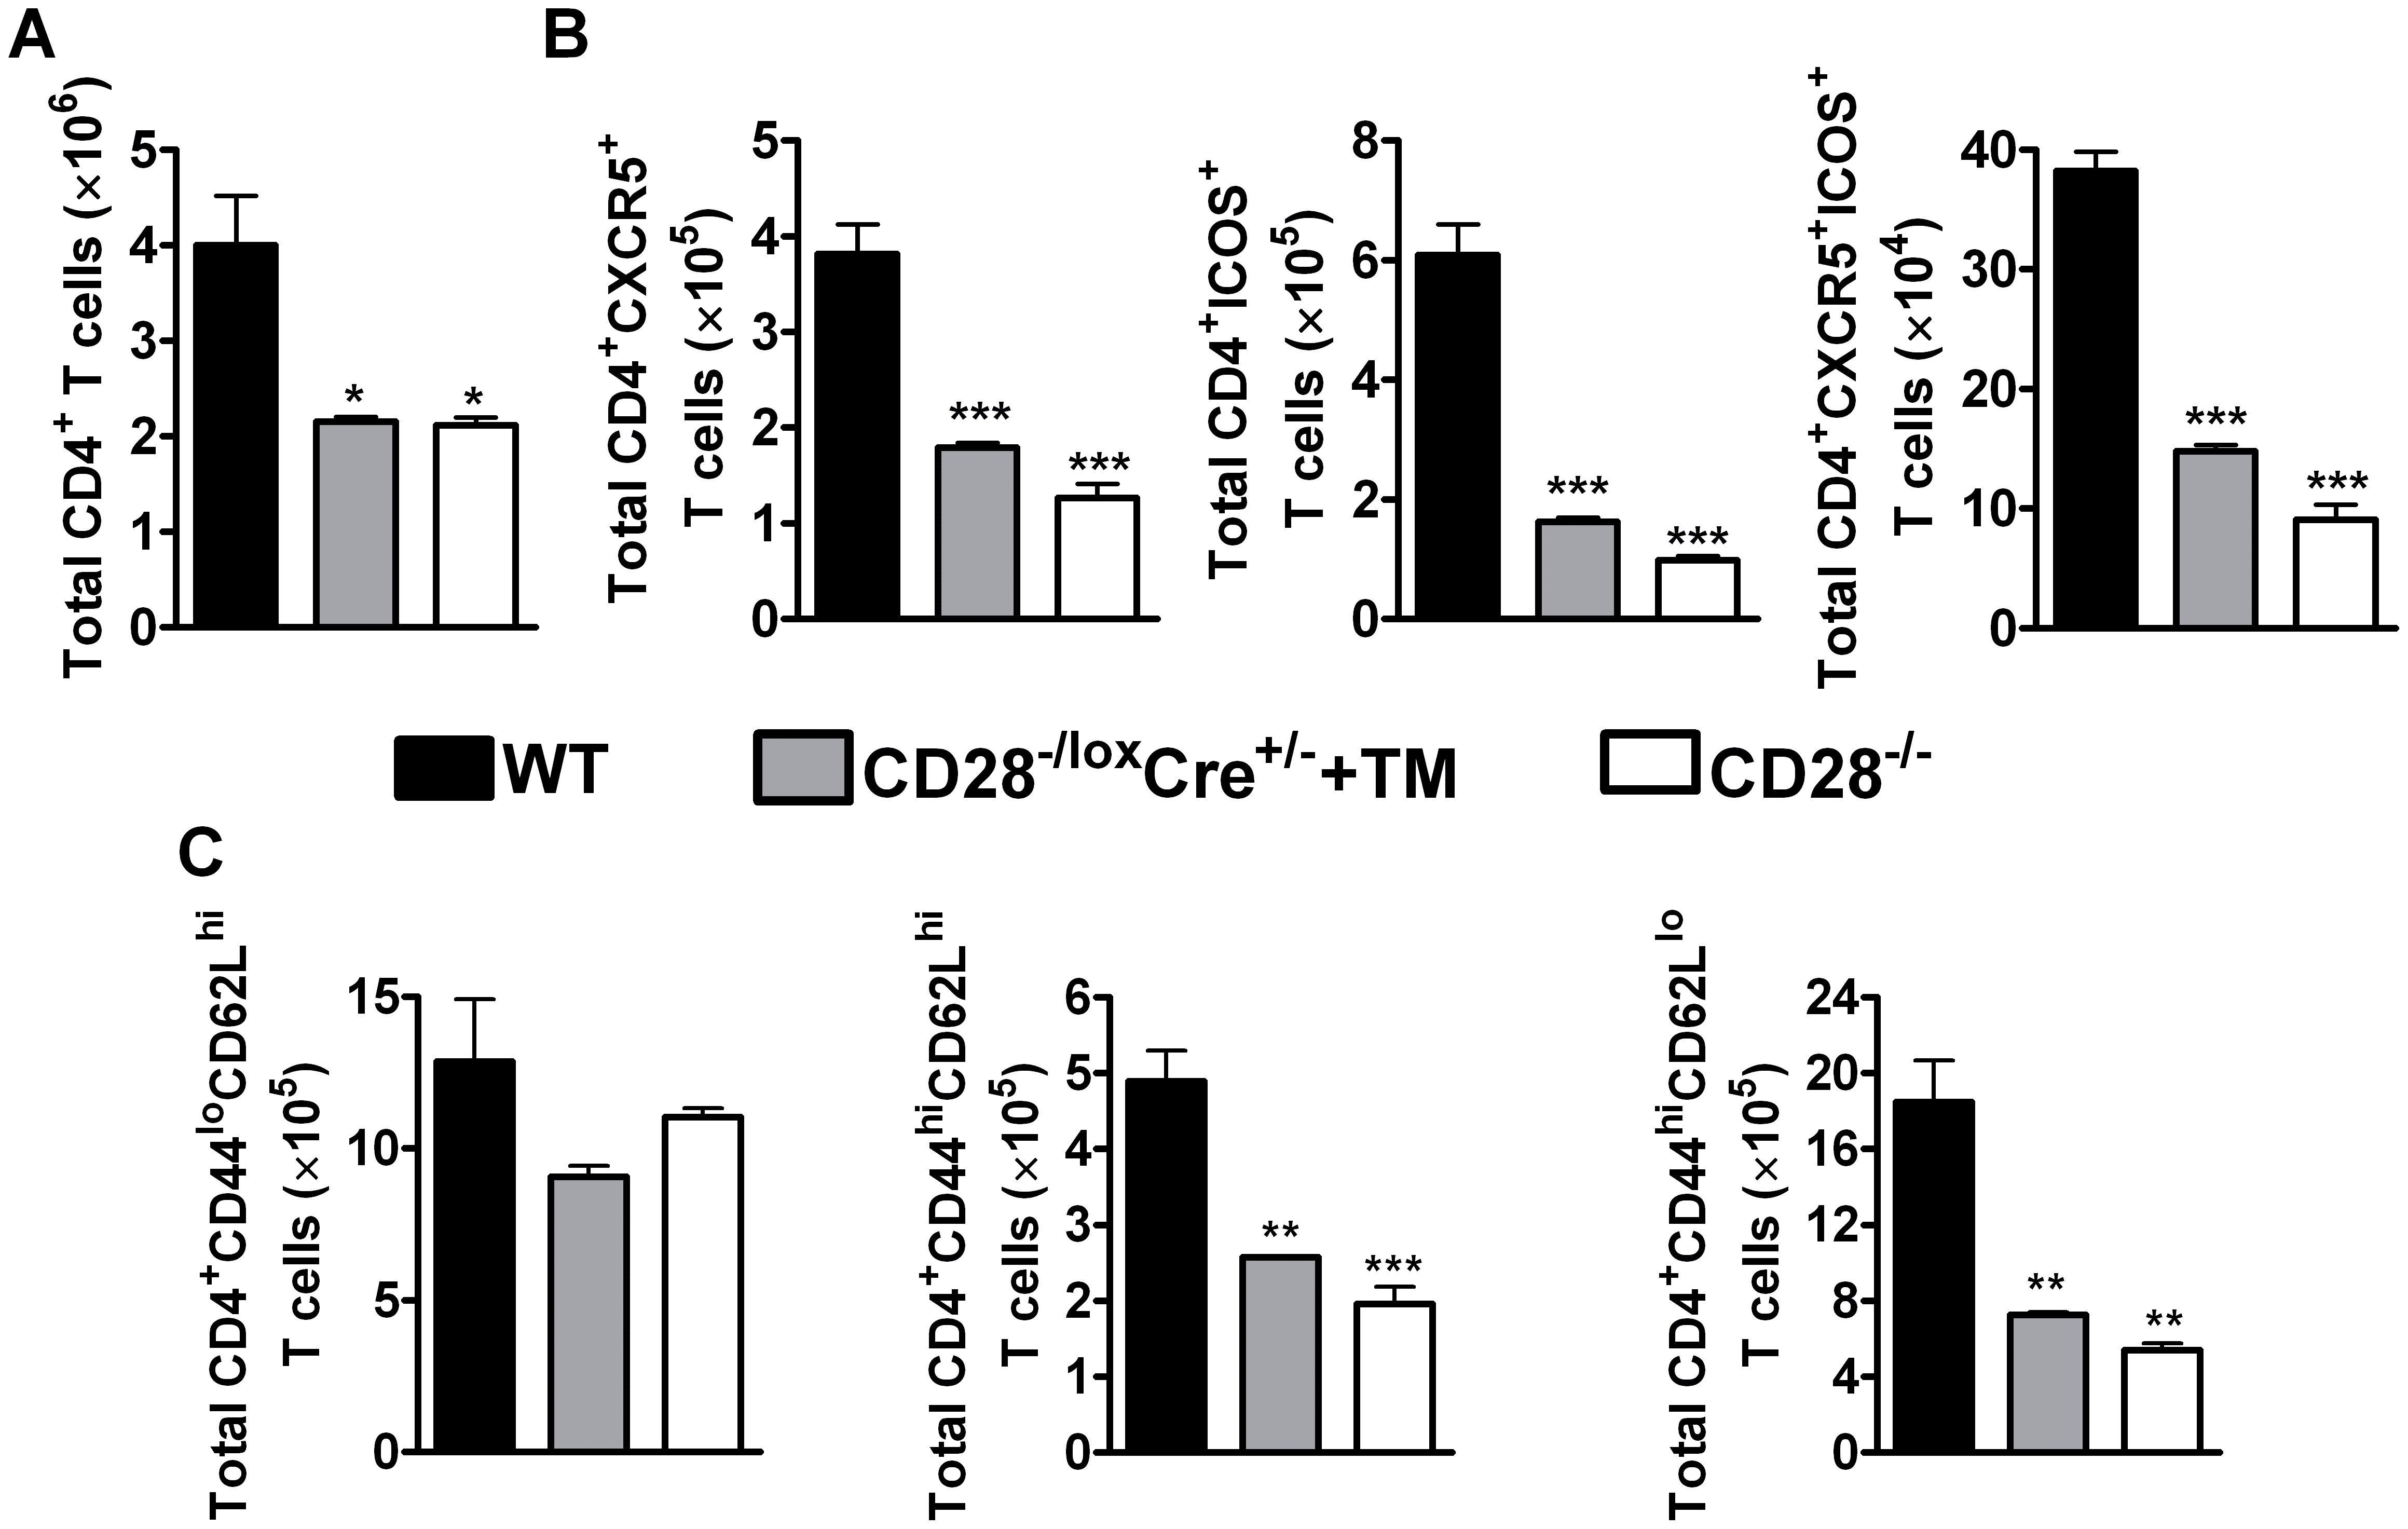 CD28 is necessary for development of T<sub>FH</sub> cells and optimal activation of CD4<sup>+</sup> T cells.